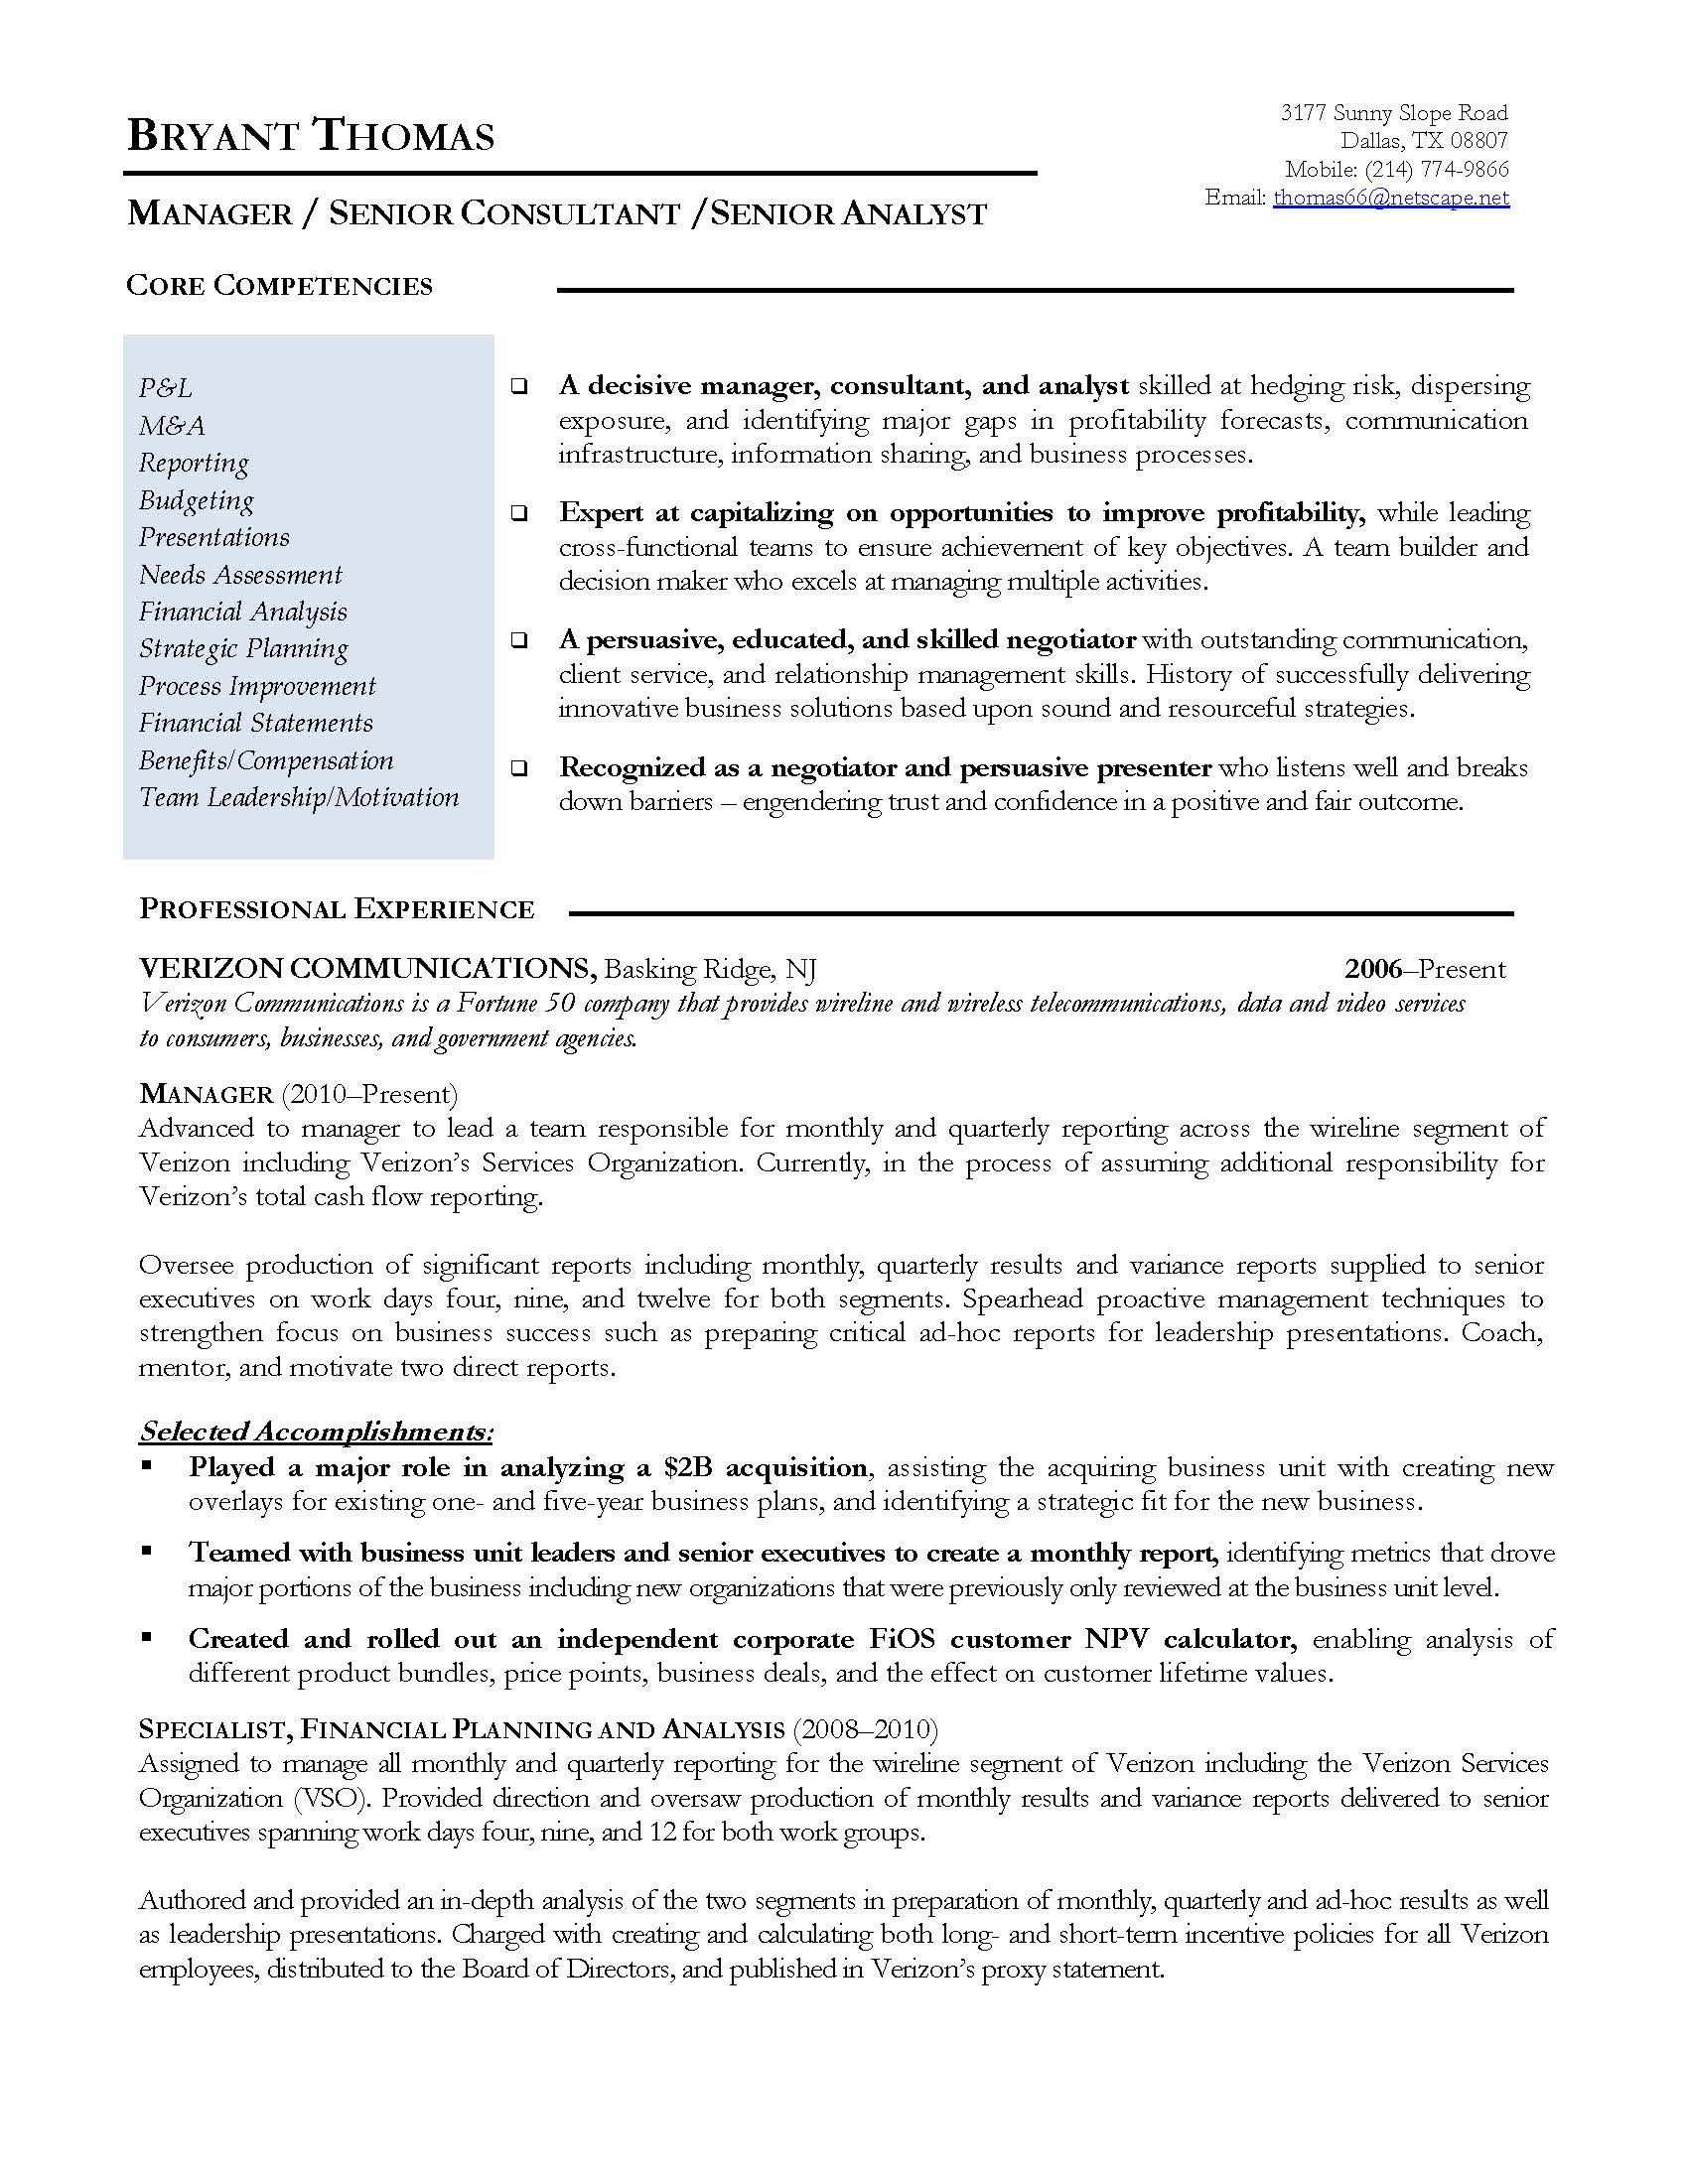 Resume In Finance Resume Samples Program And Finance Manager Fp Anda Devops Sample